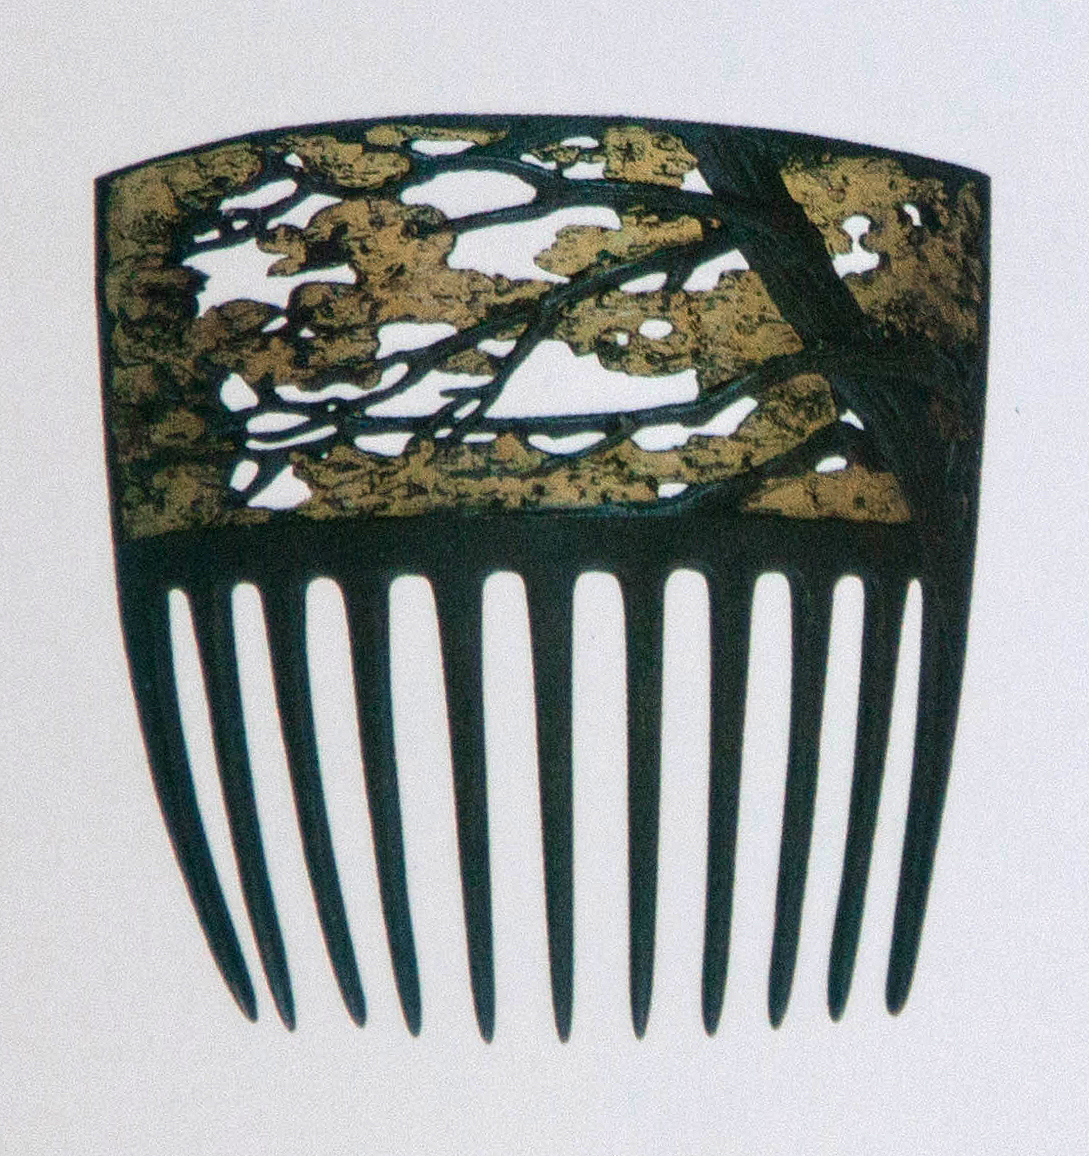 barbaraanneshaircombblog1-lalique-tree-branches-comb-1900-clairlafontaine